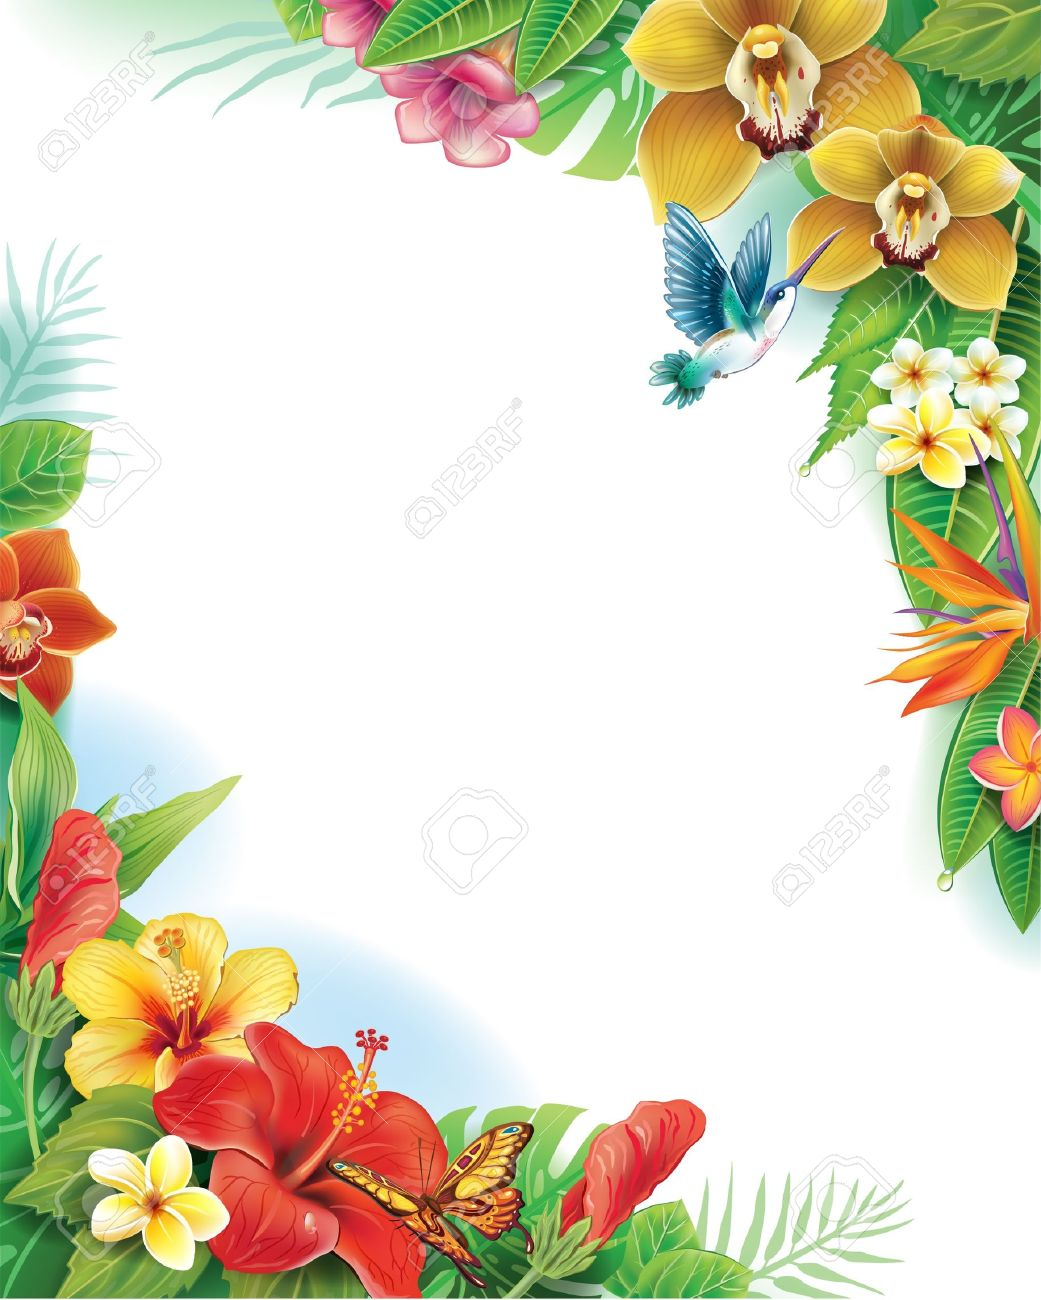 Background from tropical flowers and leaves - 21670796